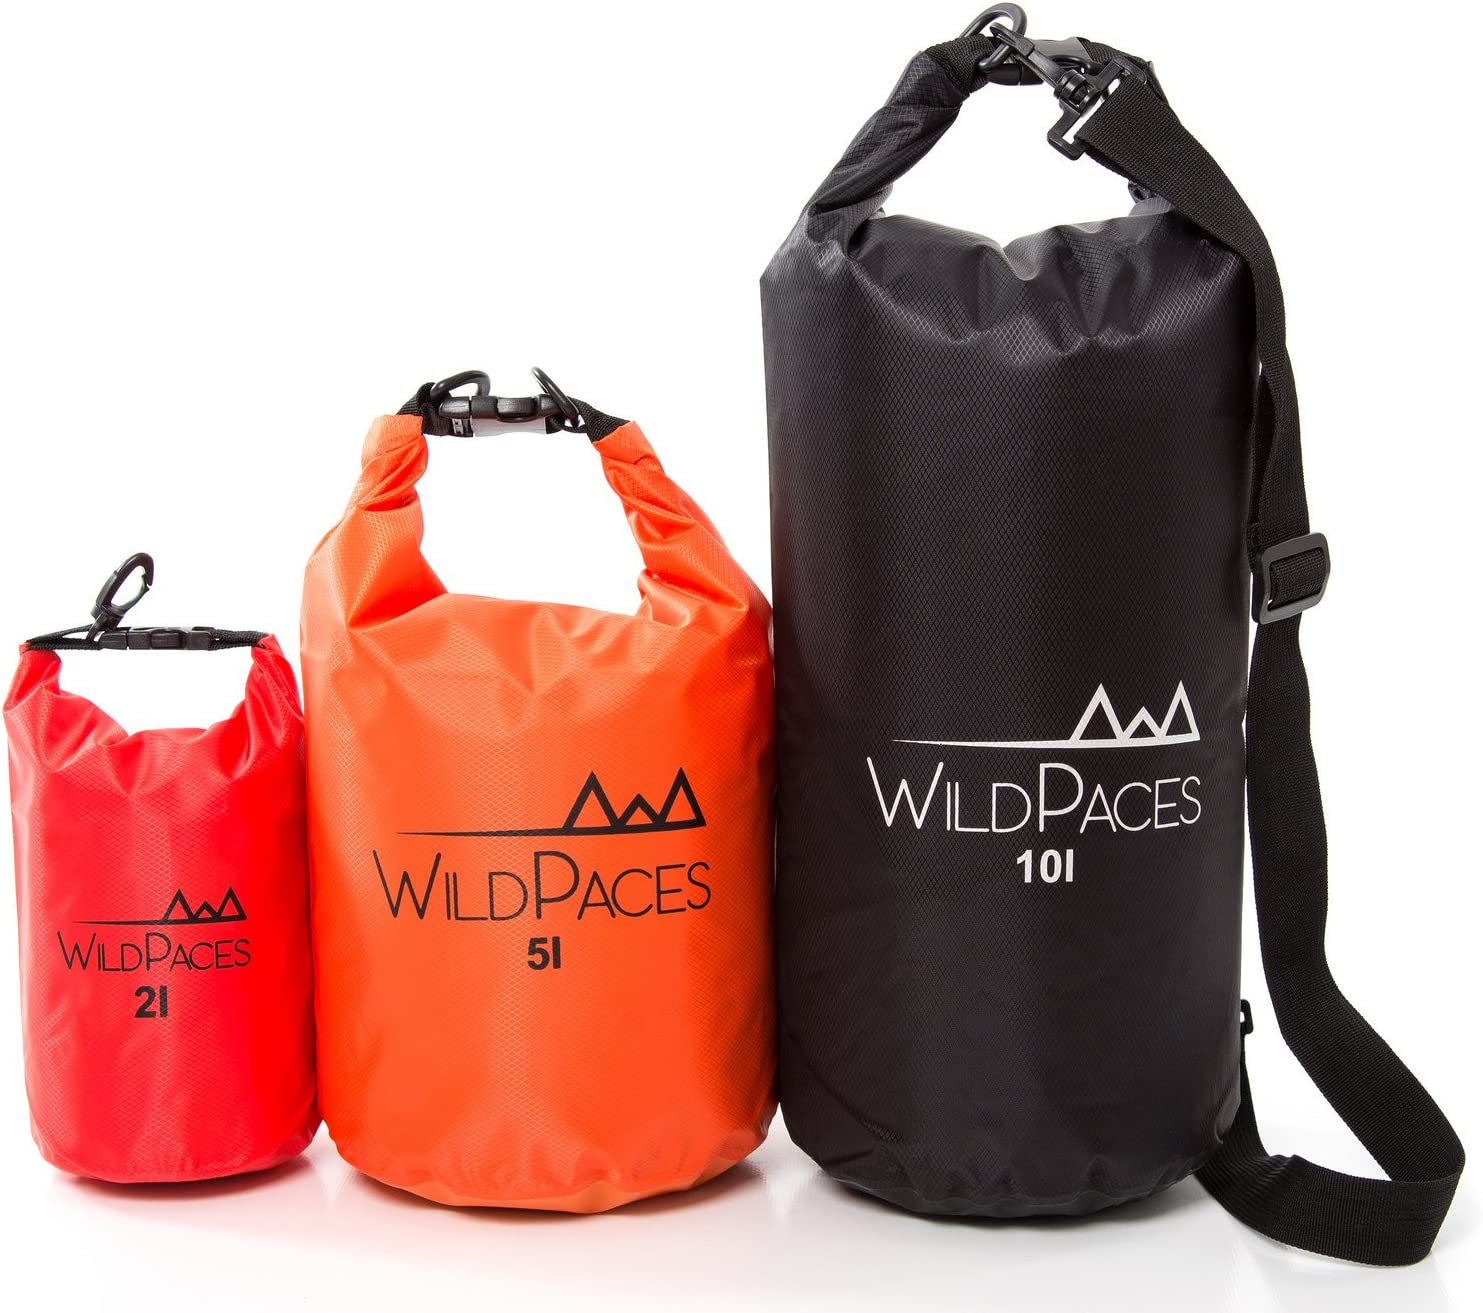 Waterproof Dry Bags by WildPaces Available of Sizes in Max 63% trust OFF 2 a Range